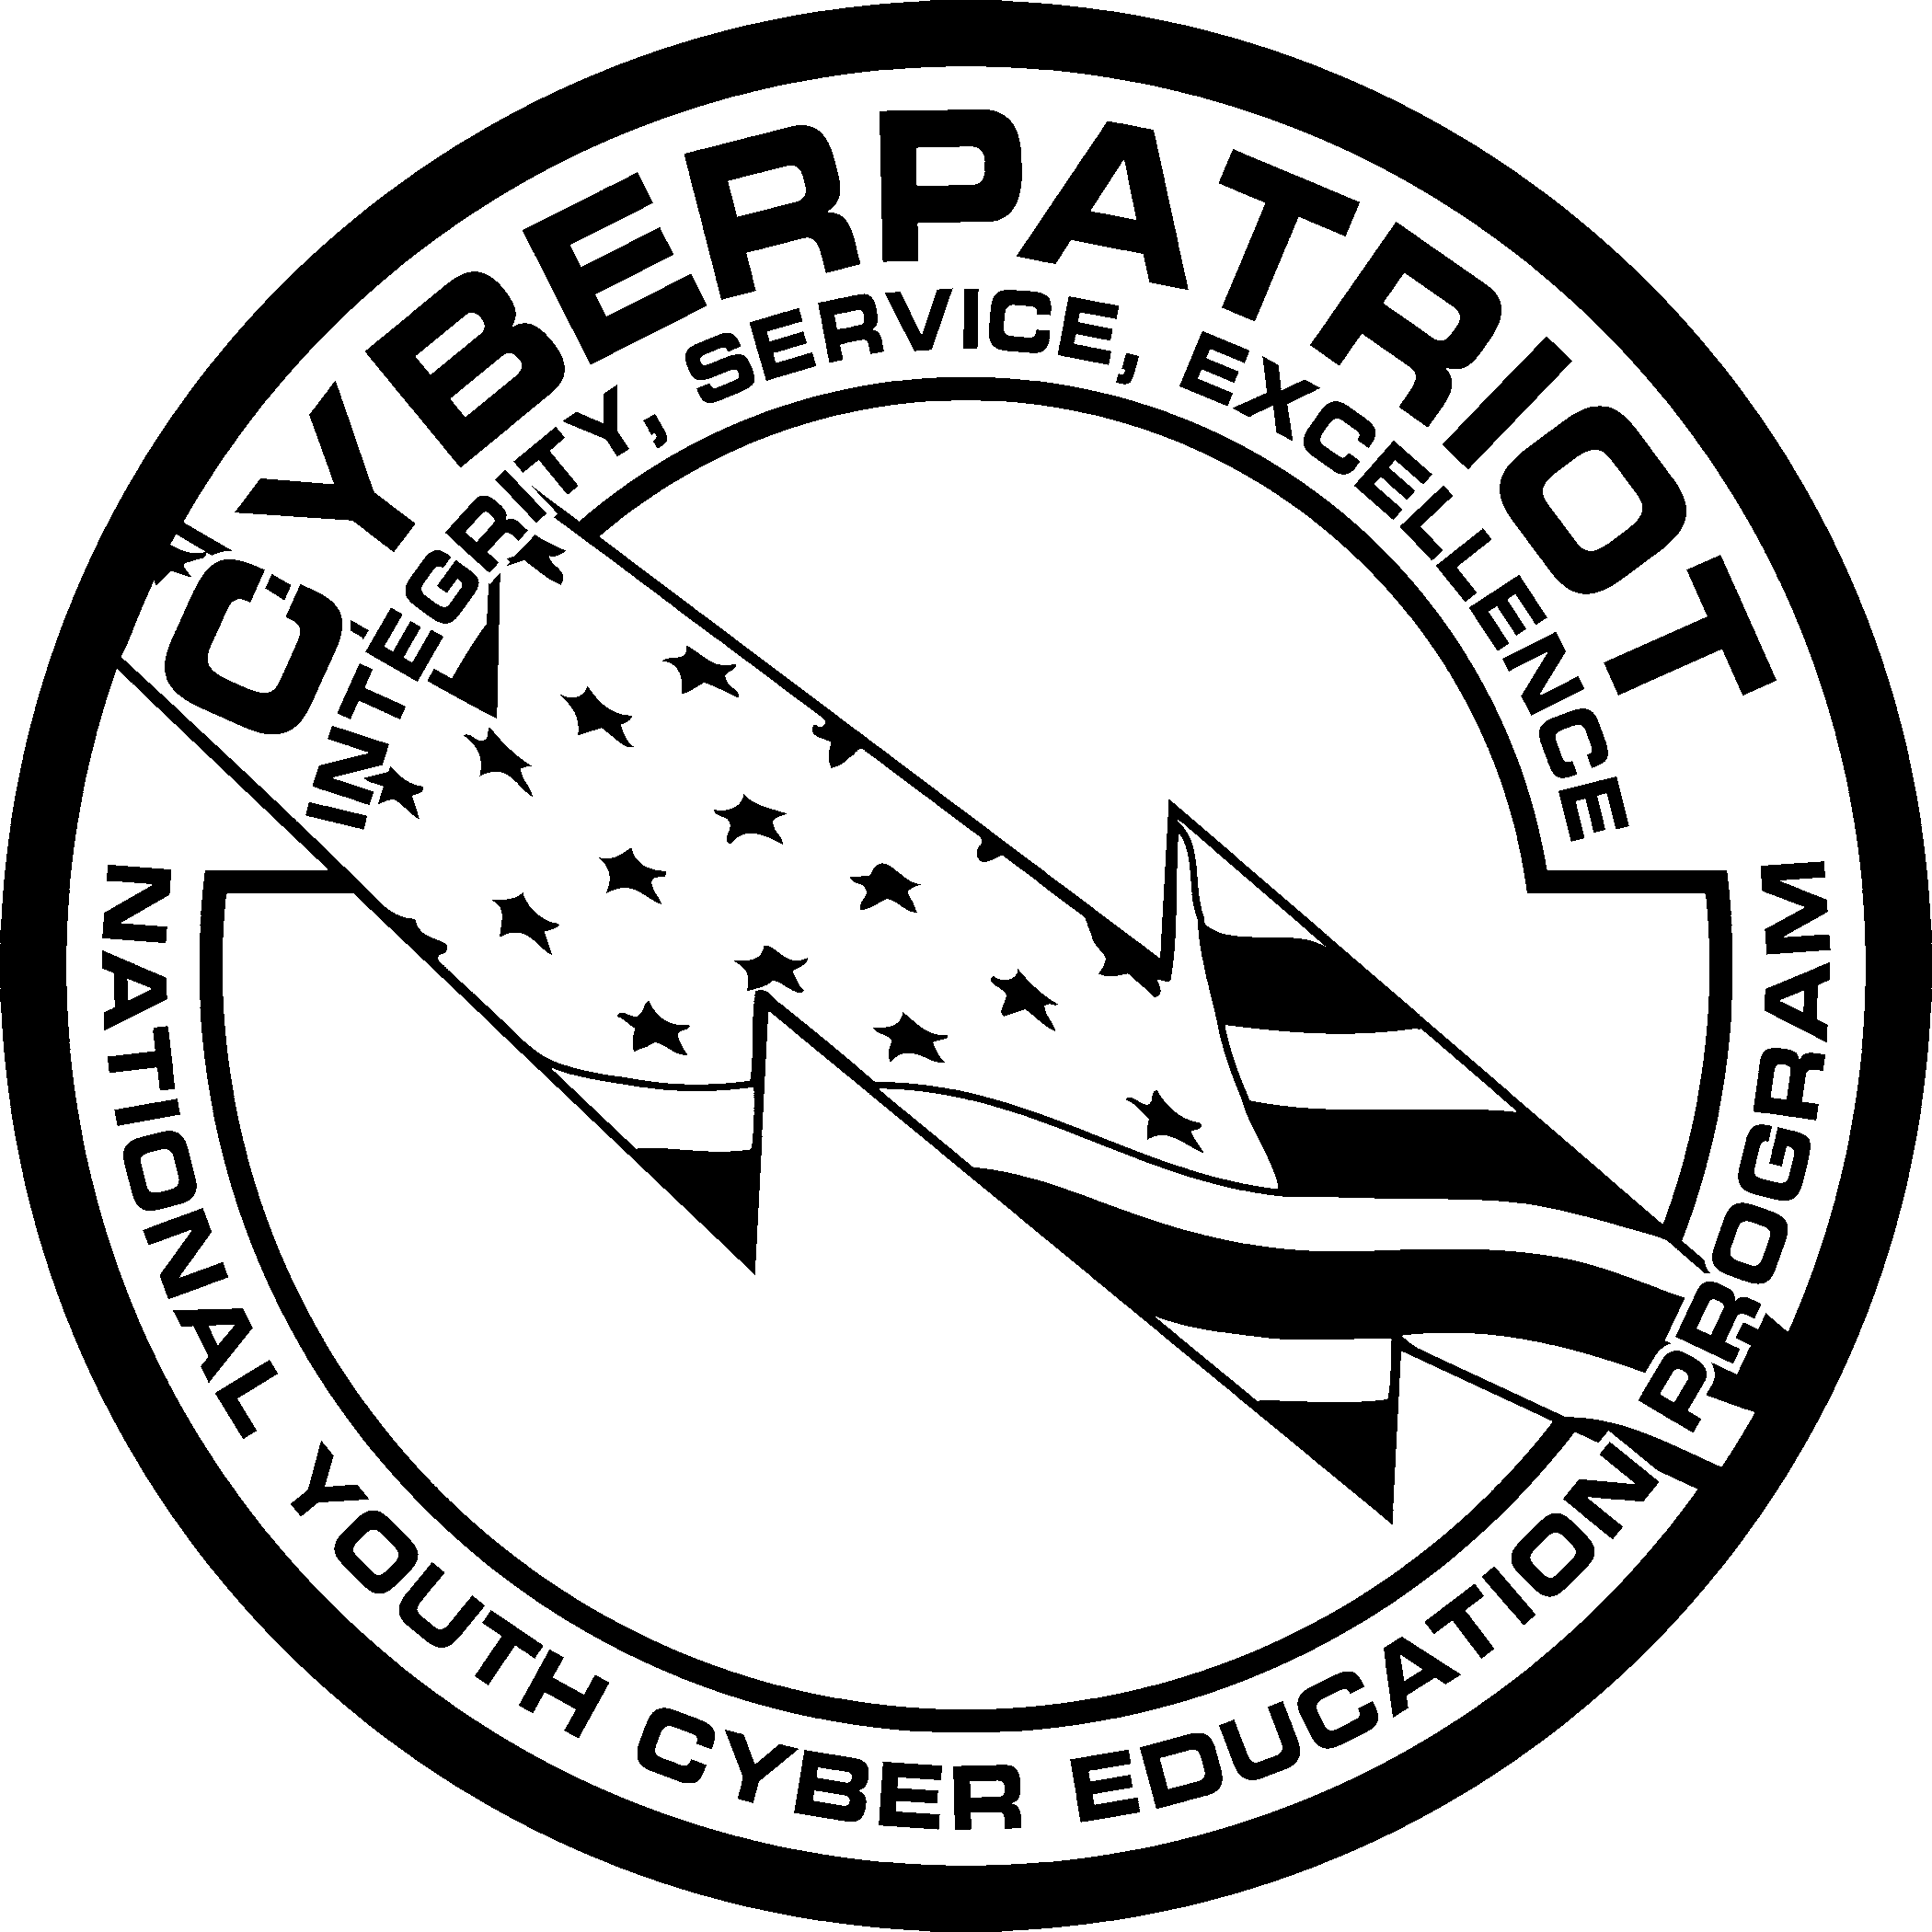 What Is Cyberpatriot